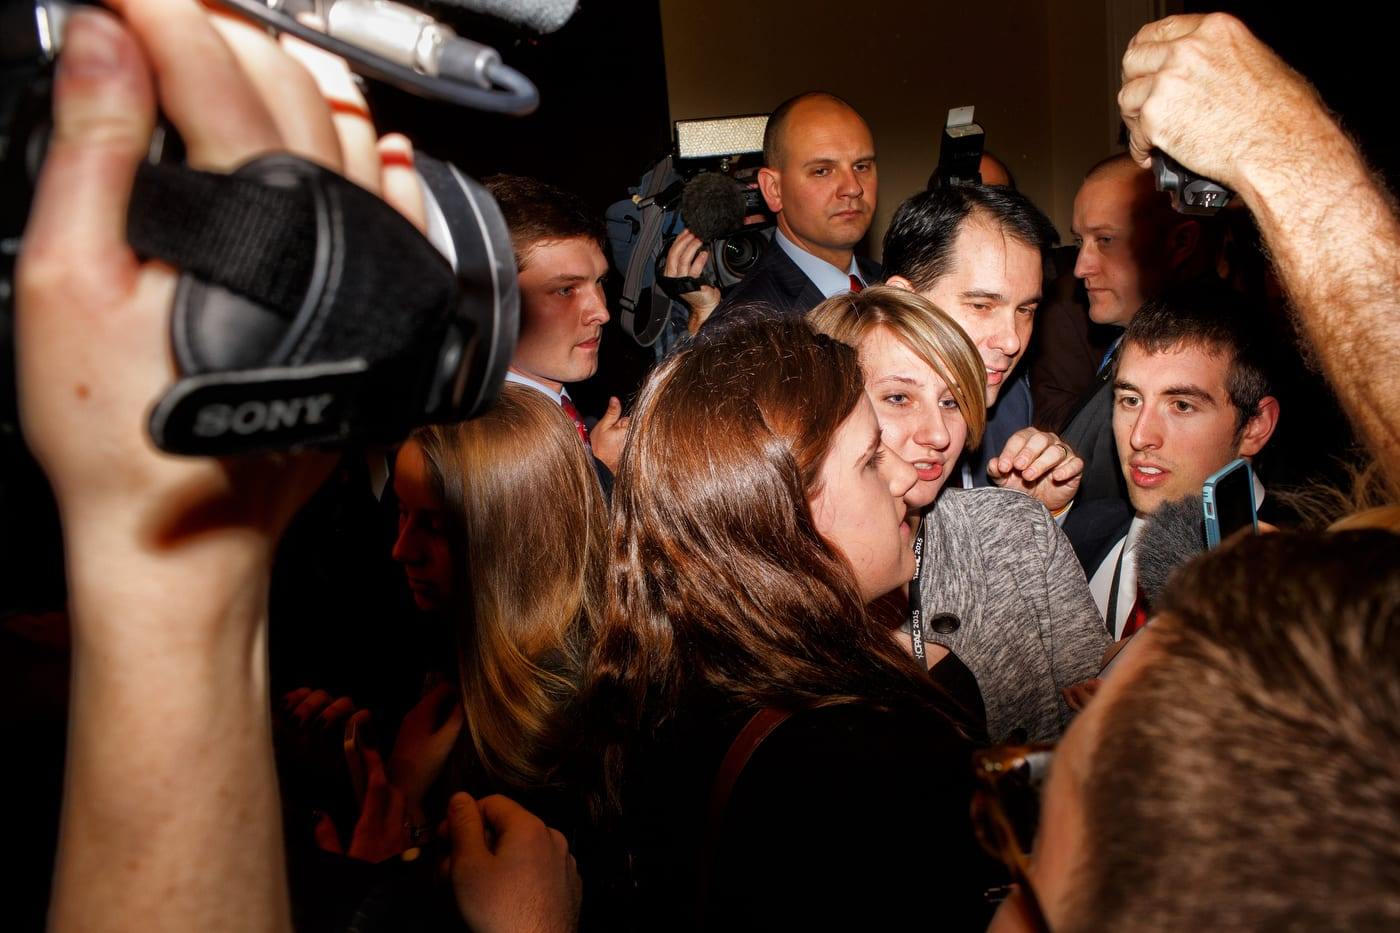 Wisconsin Governor Scott Walker is mobbed after speaking at CPAC in National Harbor, MD on Friday, February 27, 2015.